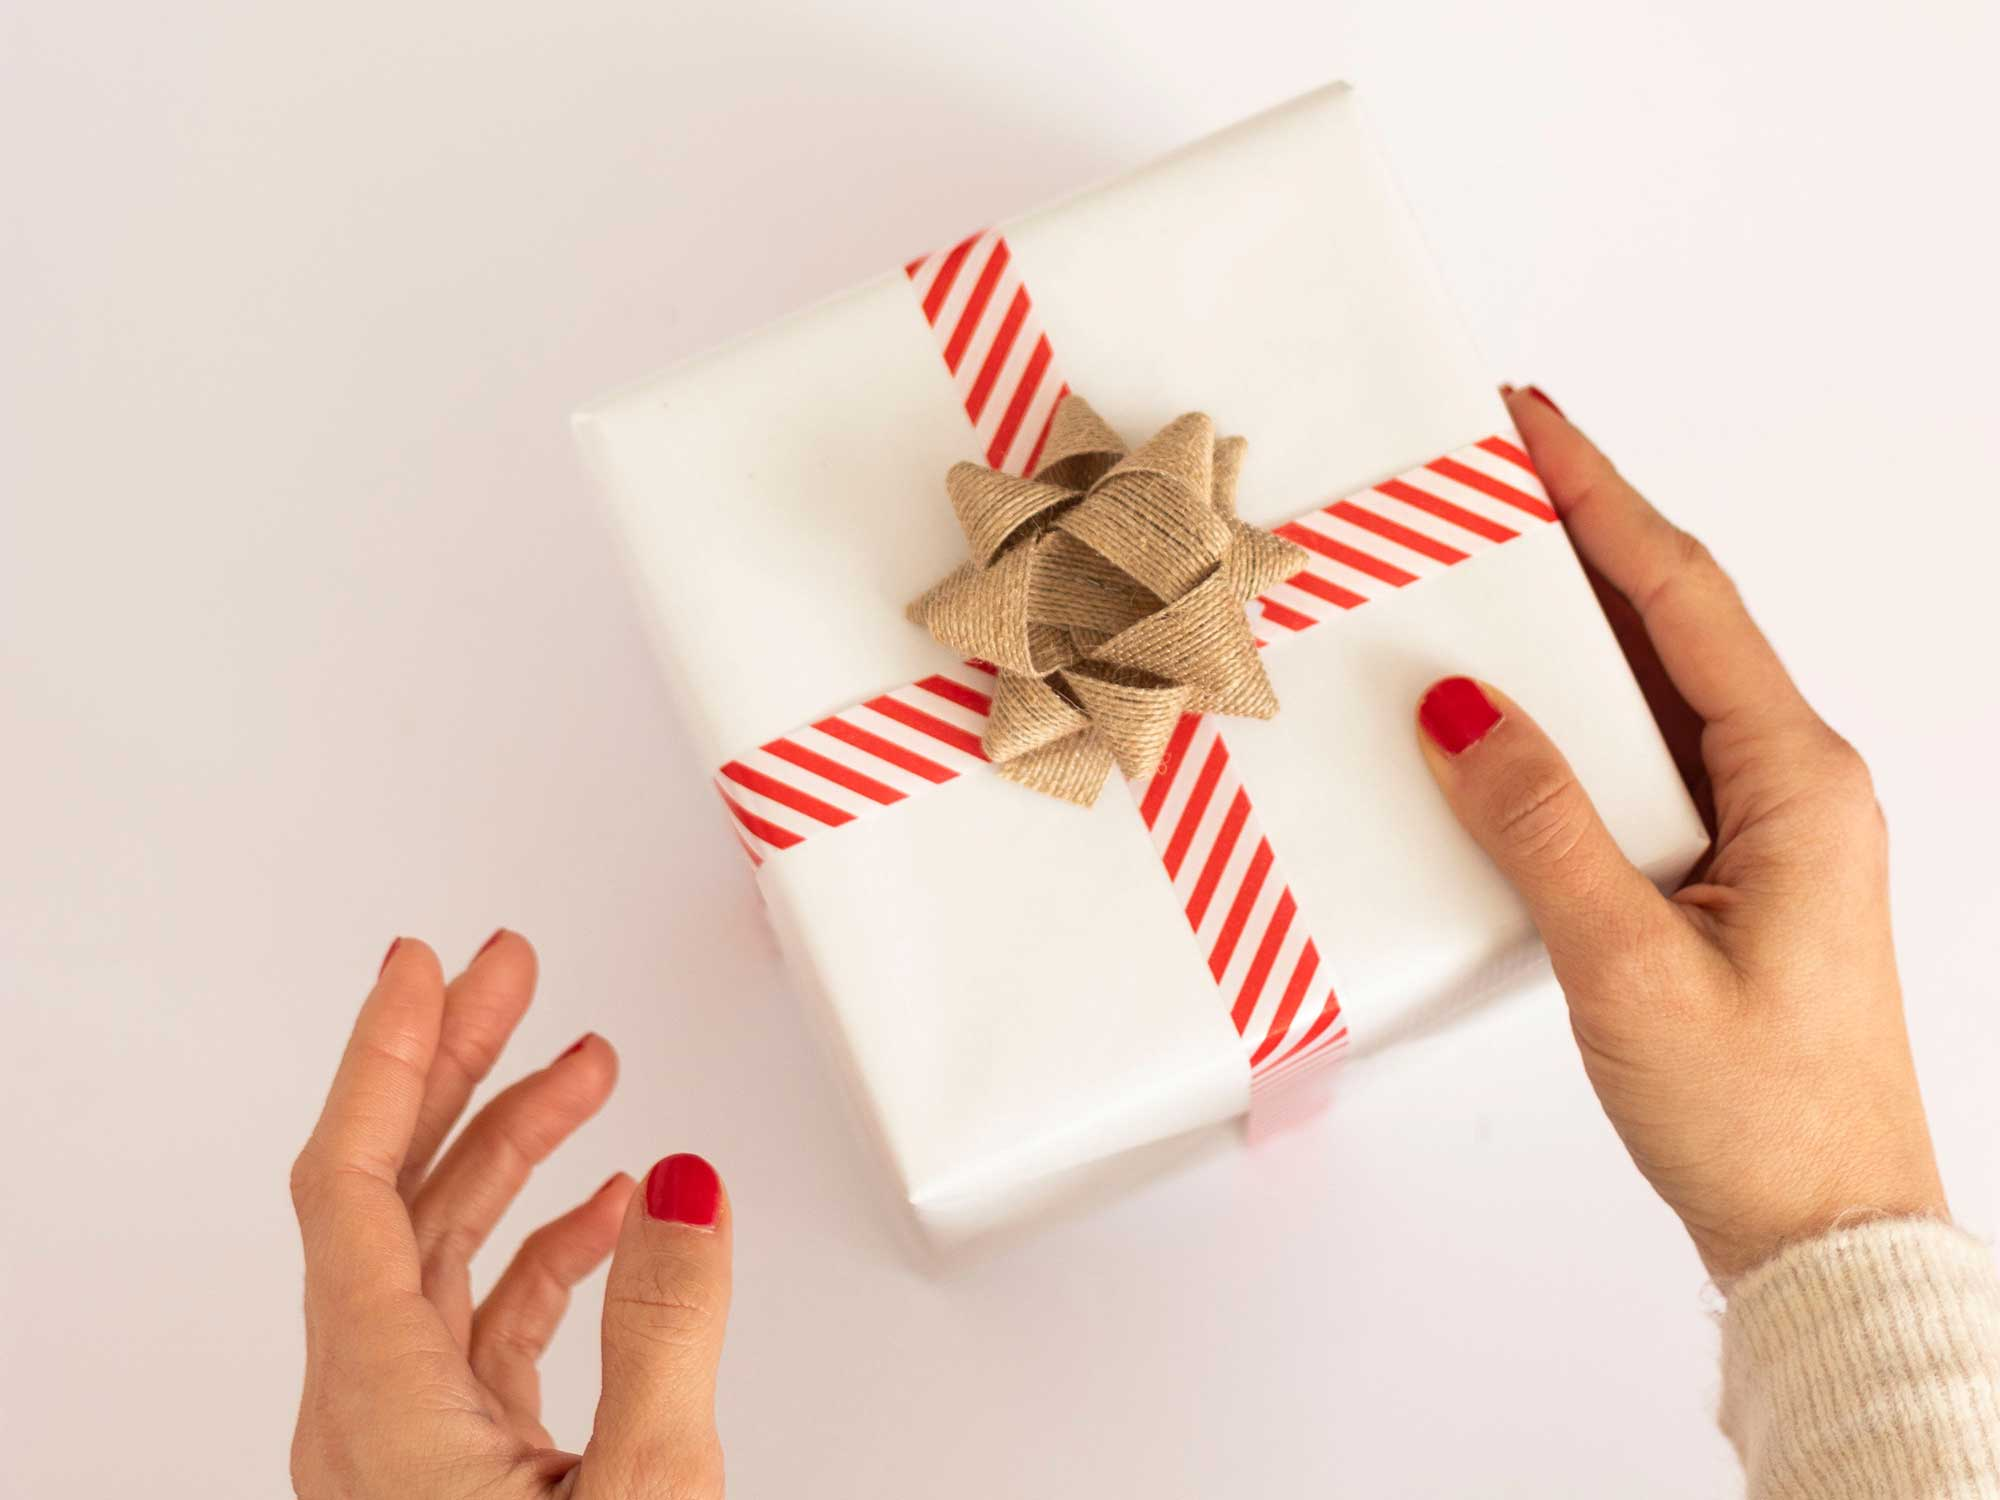 A woman's hands holding a present